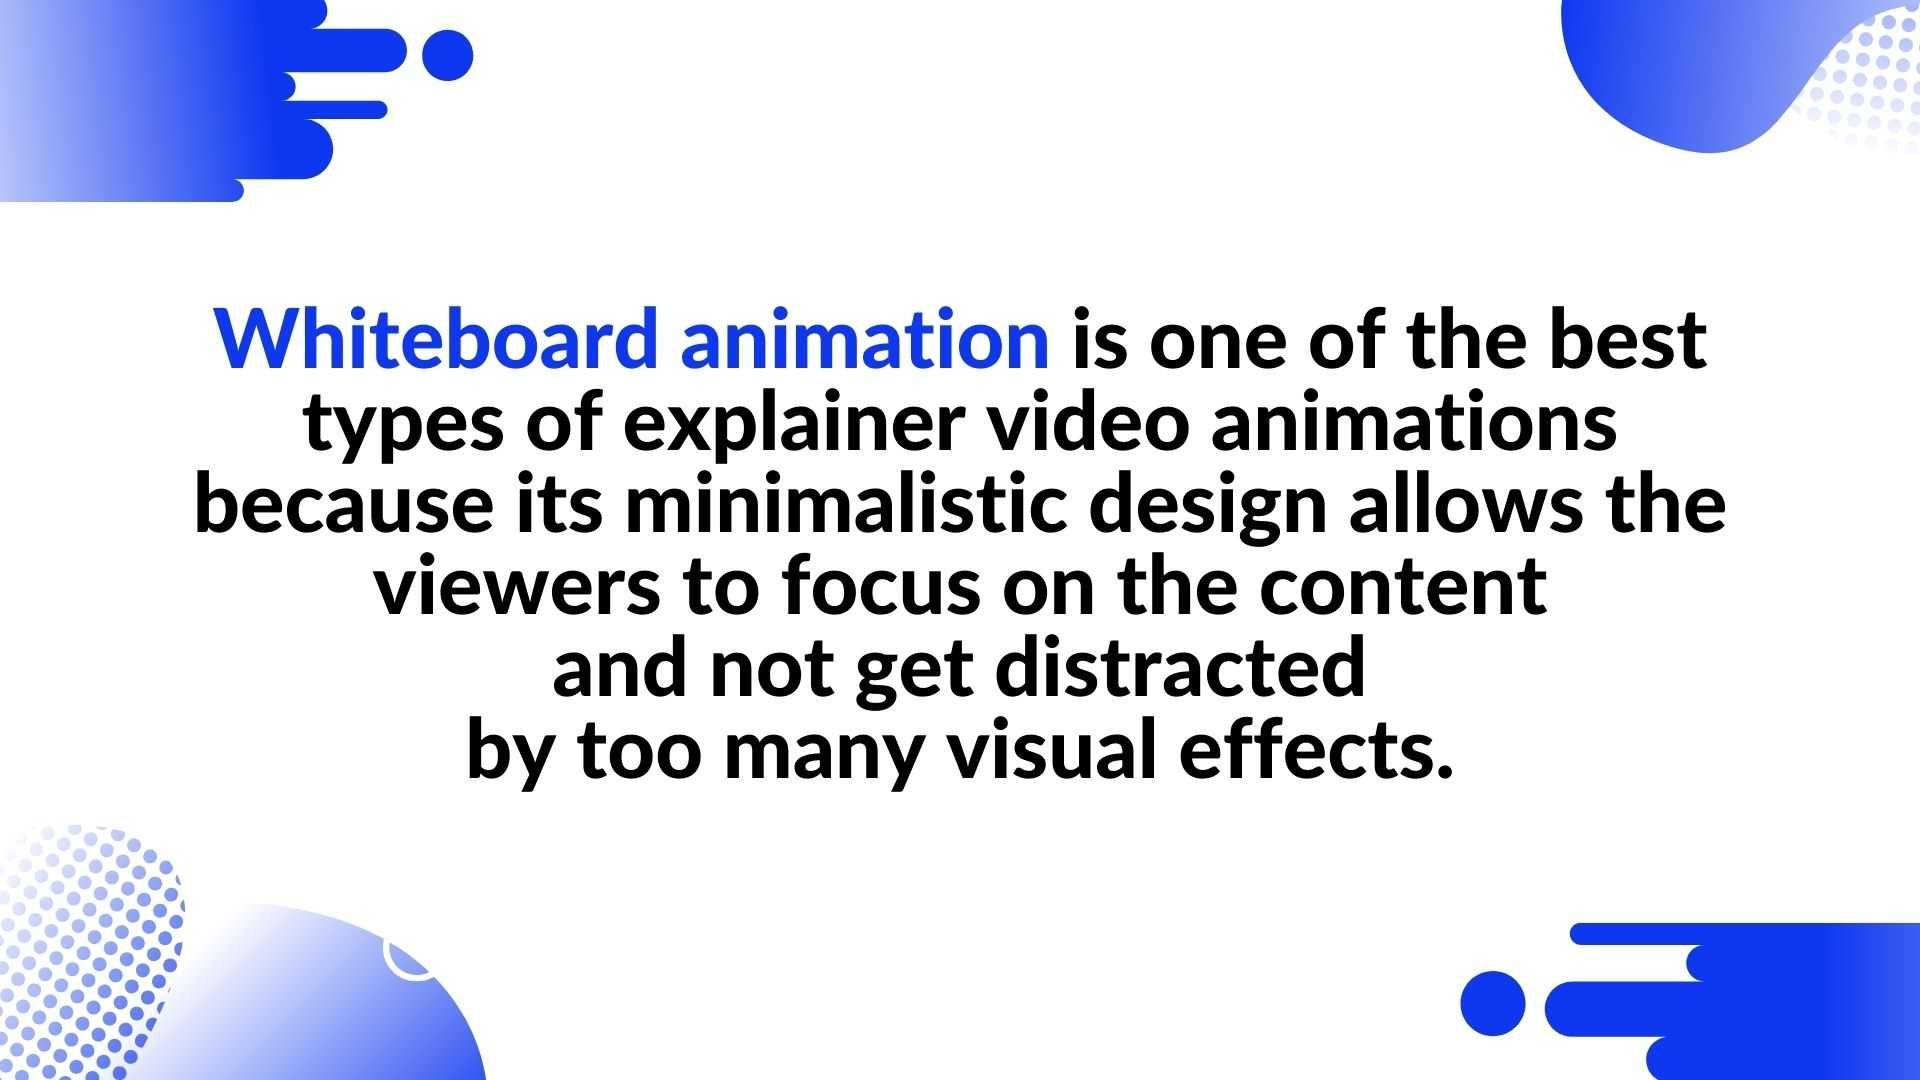 What is Whiteboard animation